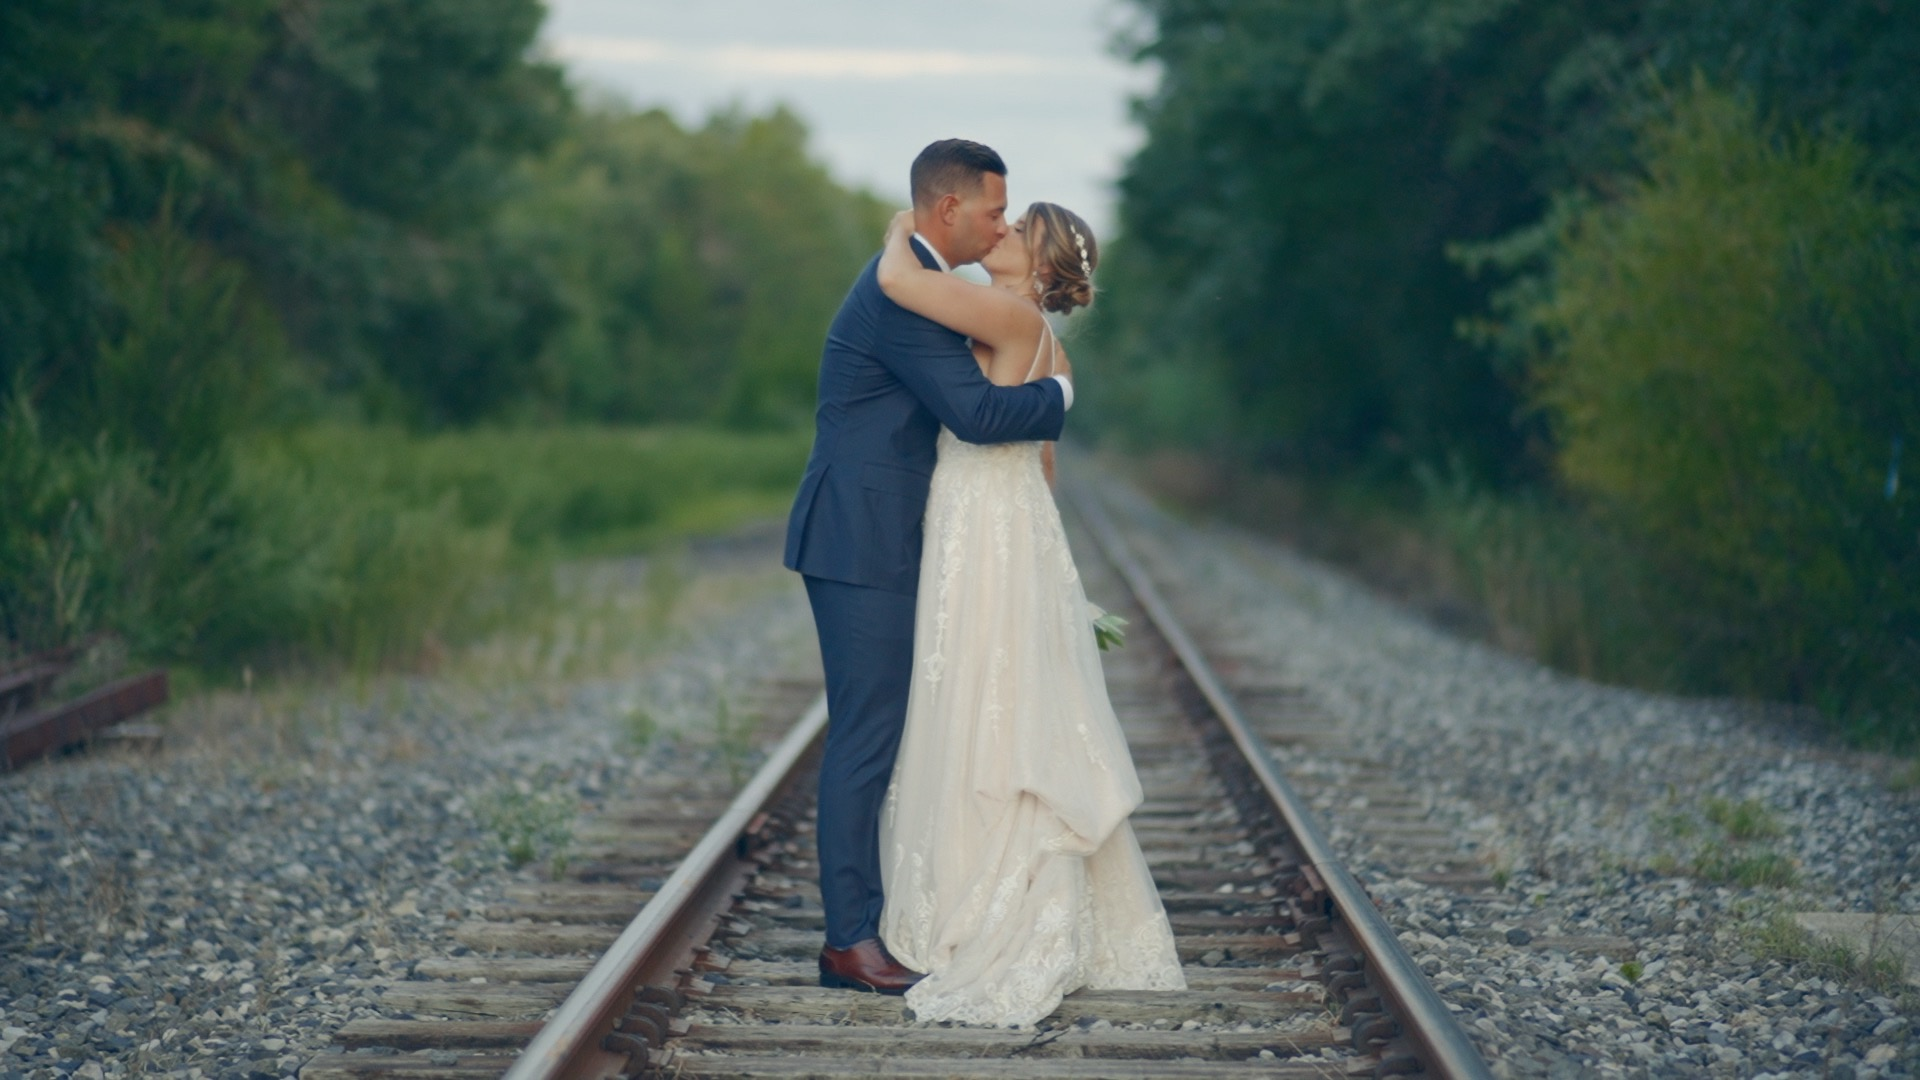 Taylor + Ron | Tuckahoe, New Jersey | Everly at Railroad